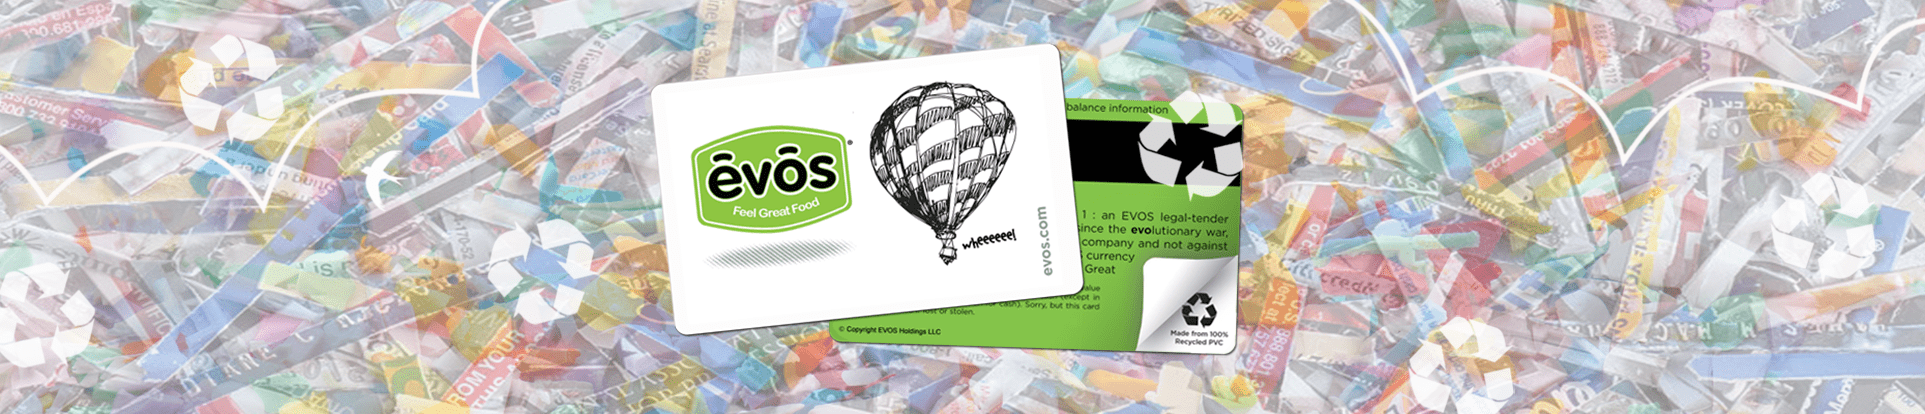 EVOS Greenback Giftcards